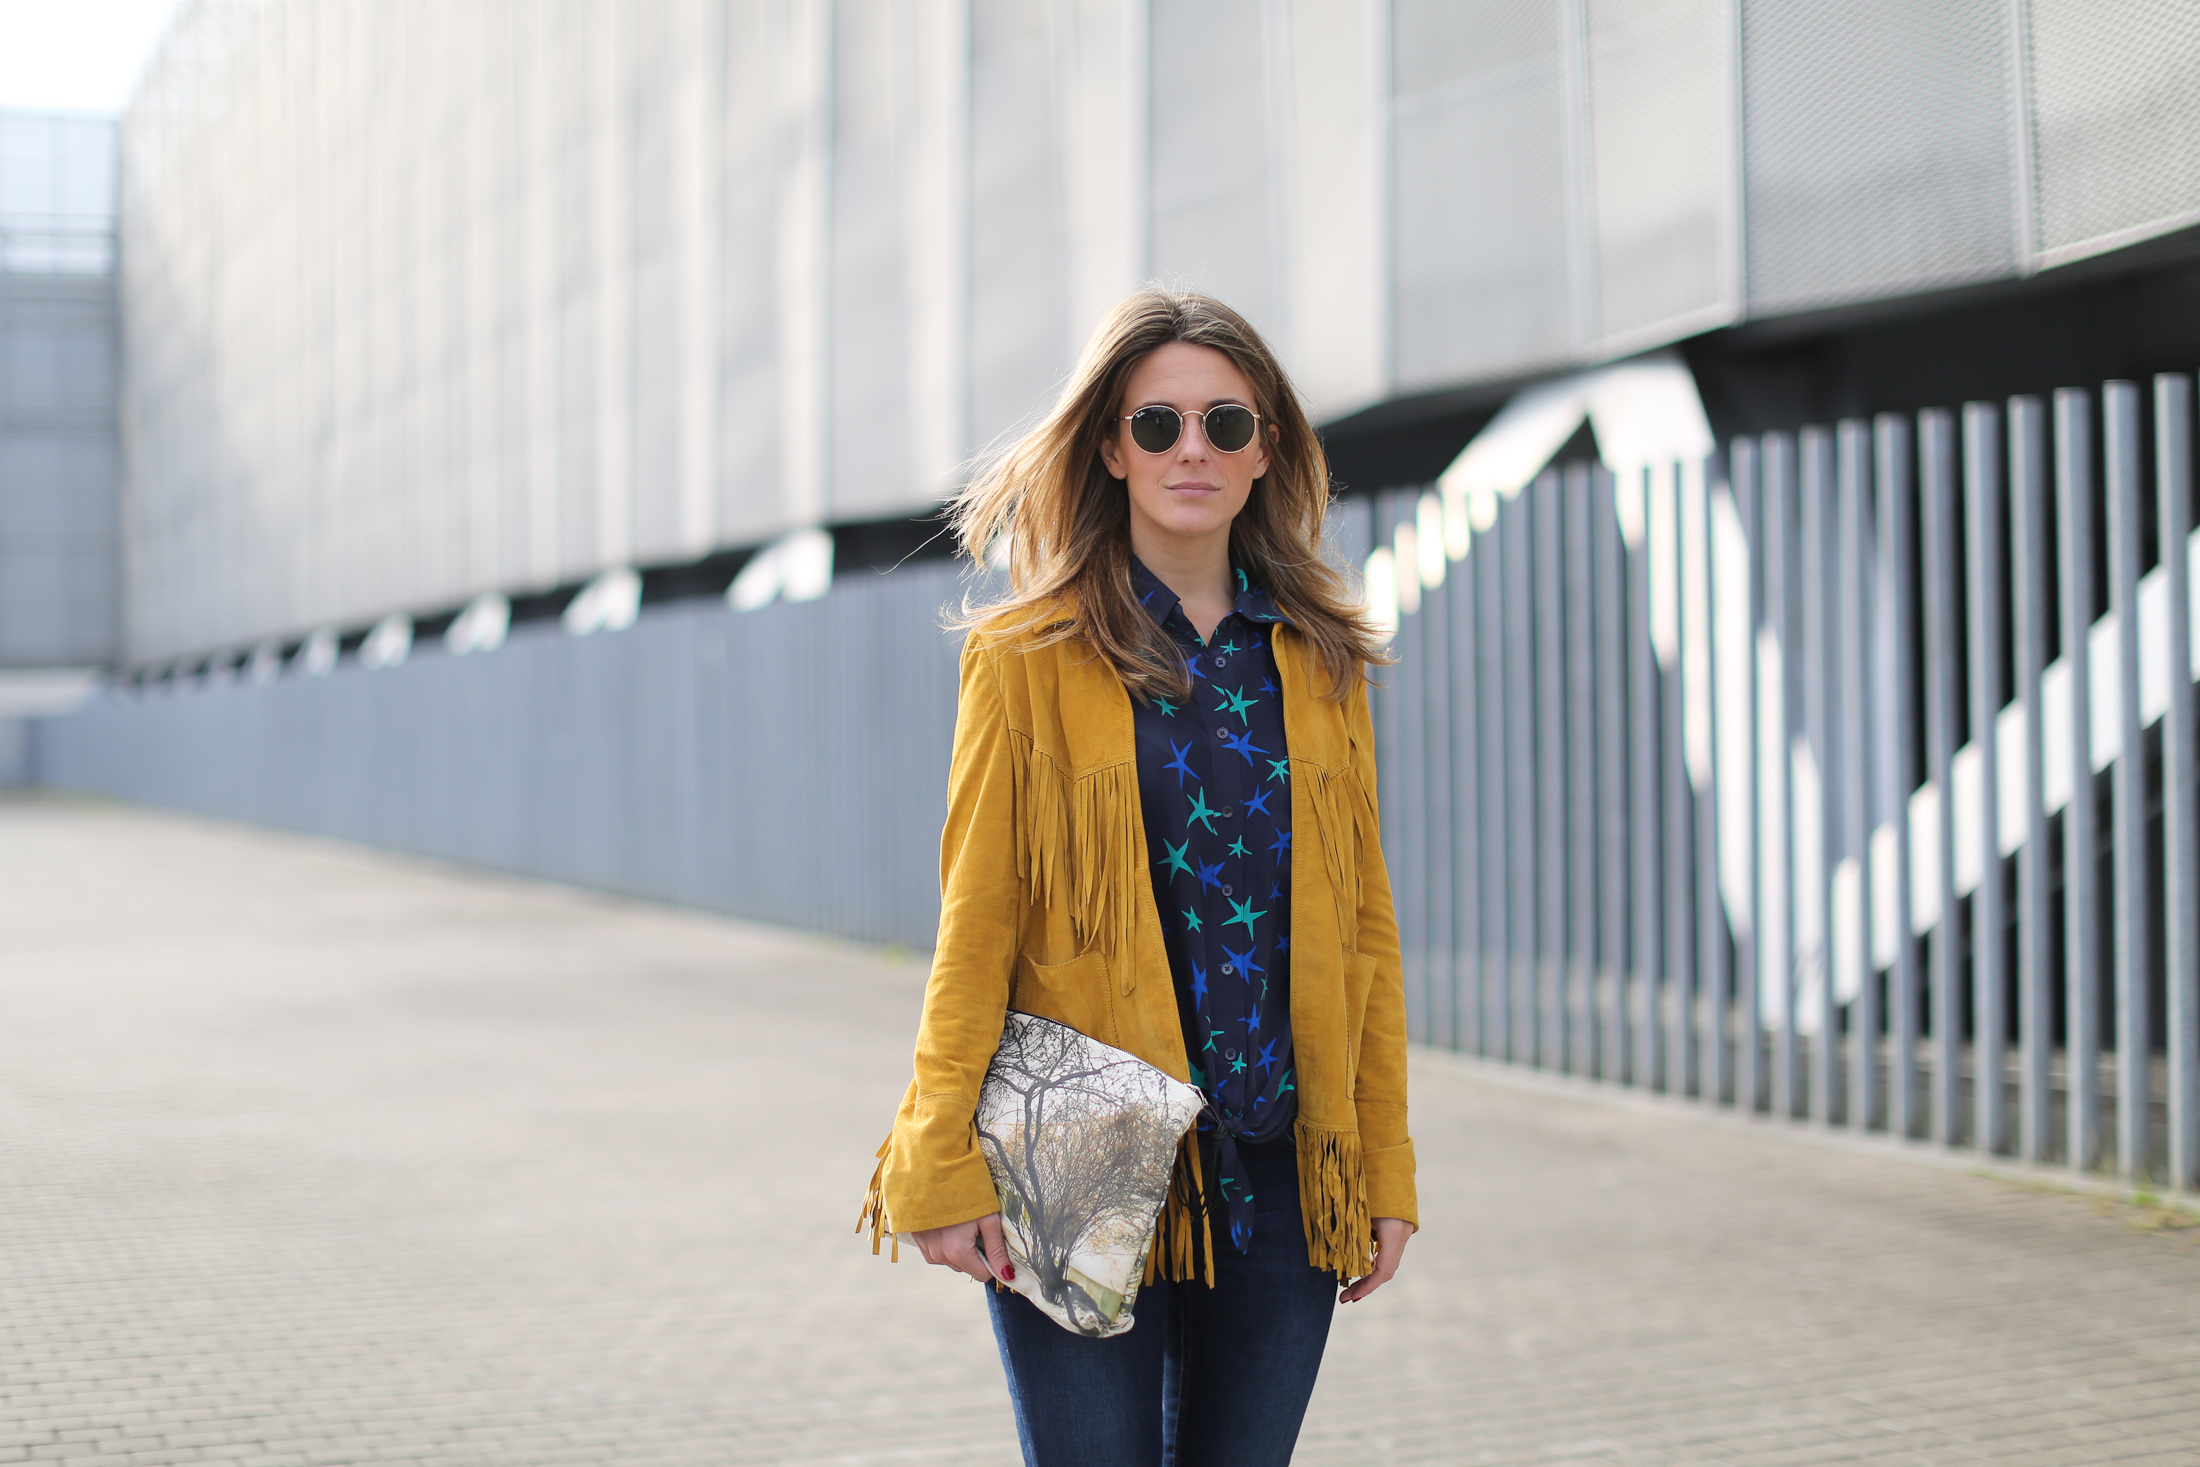 Clochet_streetstyle_zubi_helsinki_clutch_trimmerbilbao_equipment_france_silk_blouse